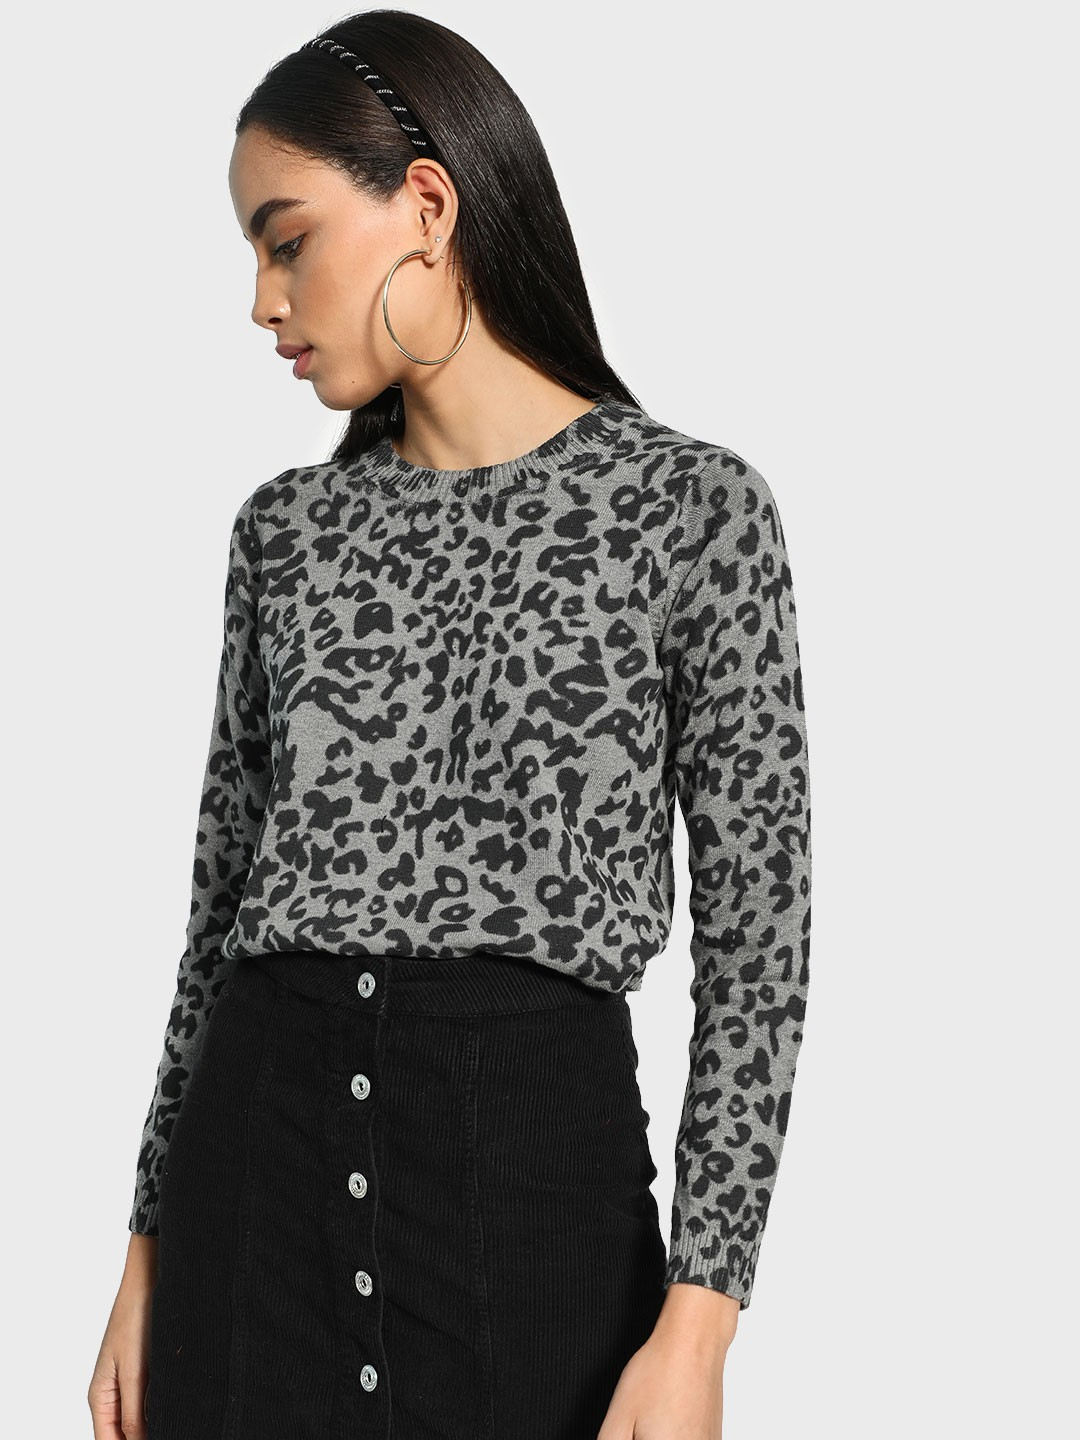 Akiva Grey All Over Leopard Print Pullover 1